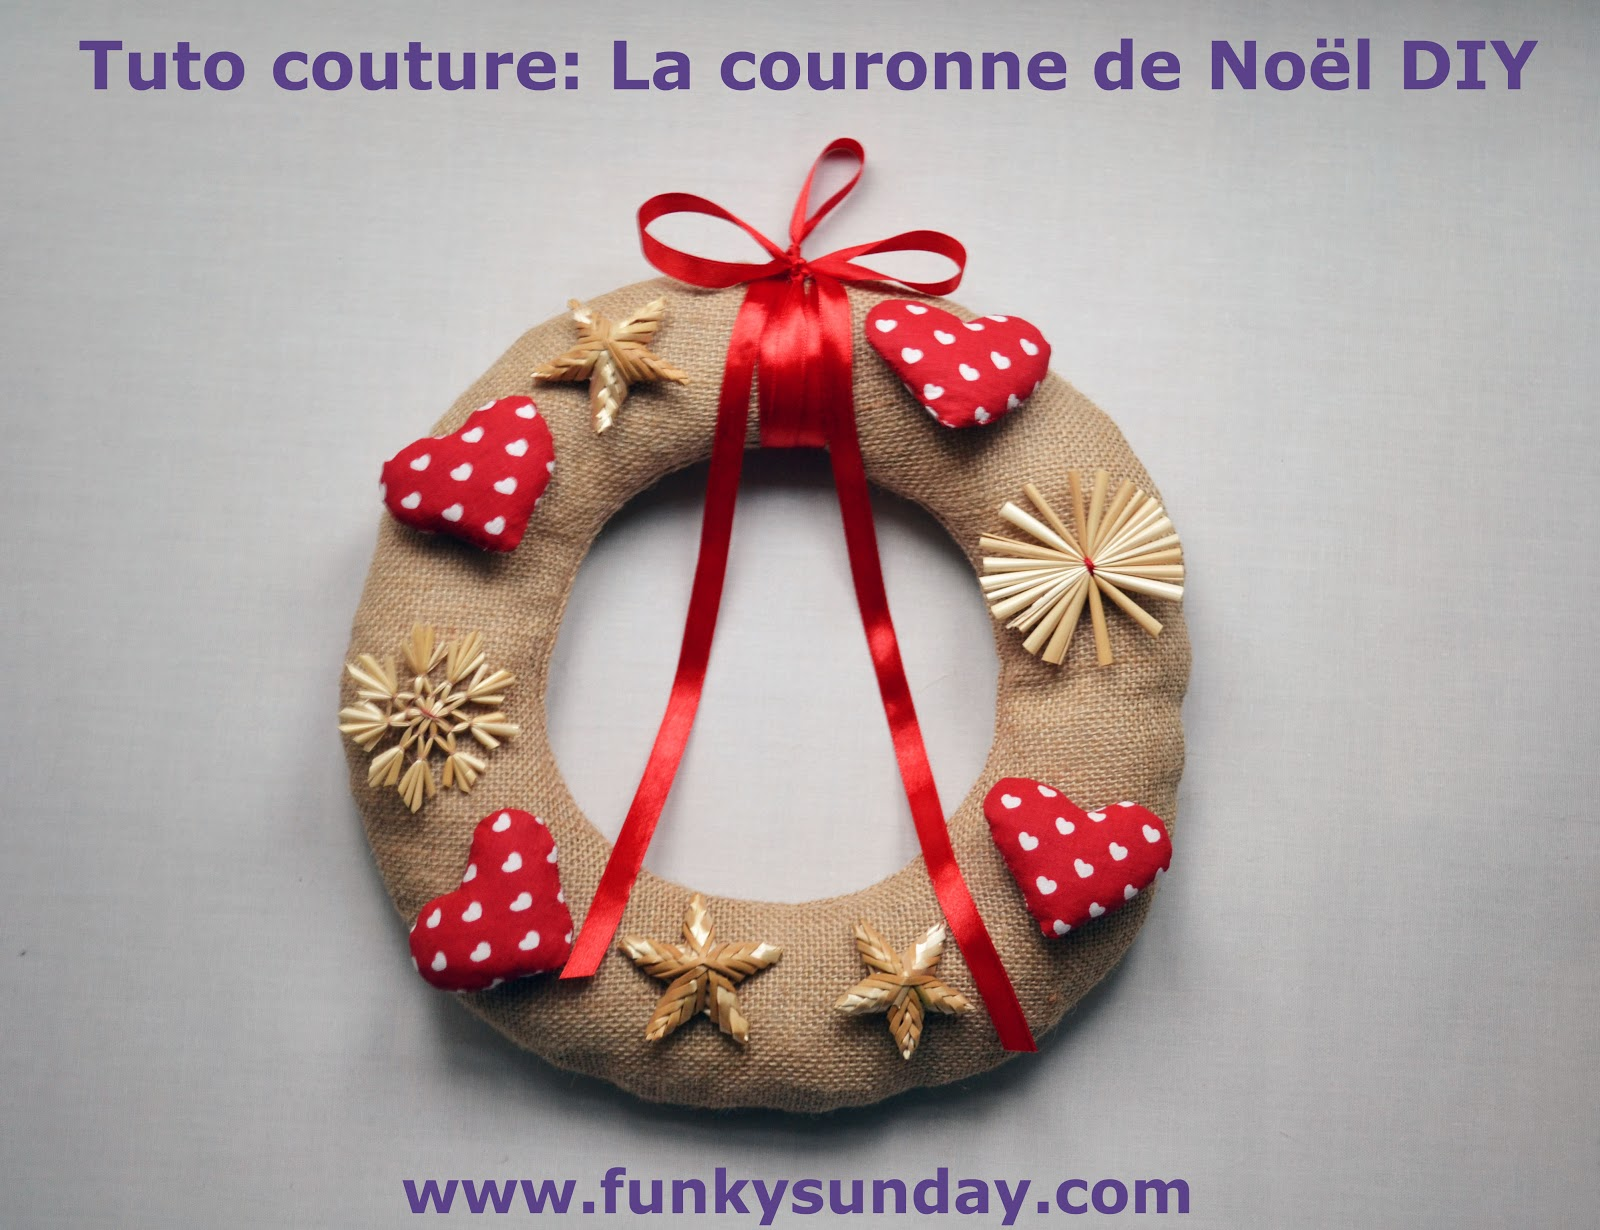 Funky sunday ma couronne de no l diy - Comment accrocher une couronne de noel a la porte ...